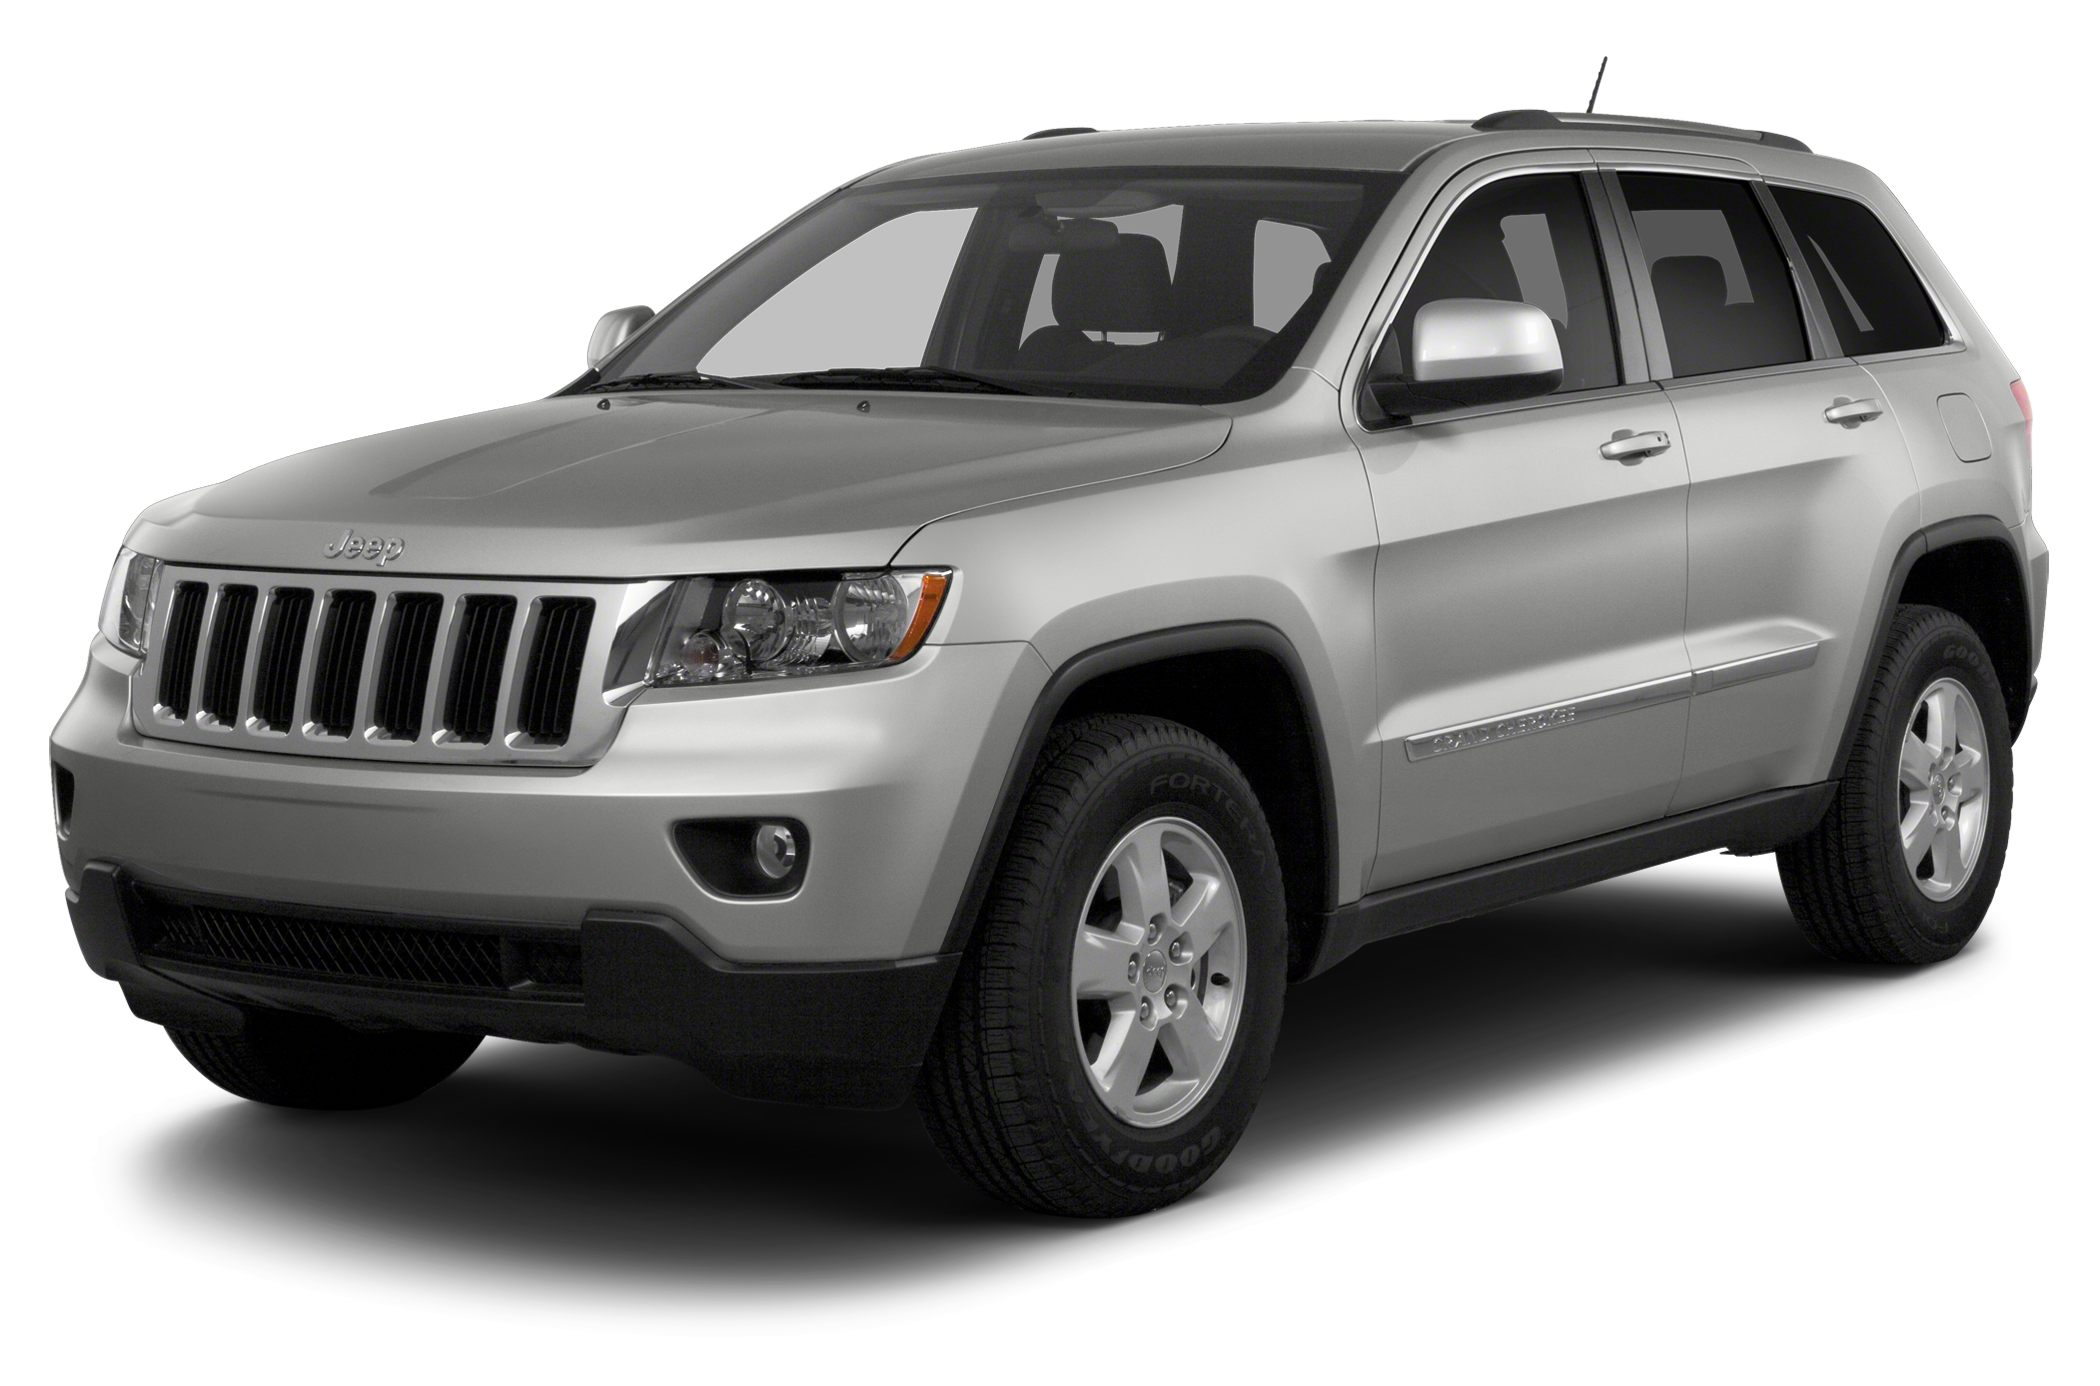 2013 Jeep Grand Cherokee Overland No Haggle Price This 2013 Jeep Grand Cherokee is offered to y